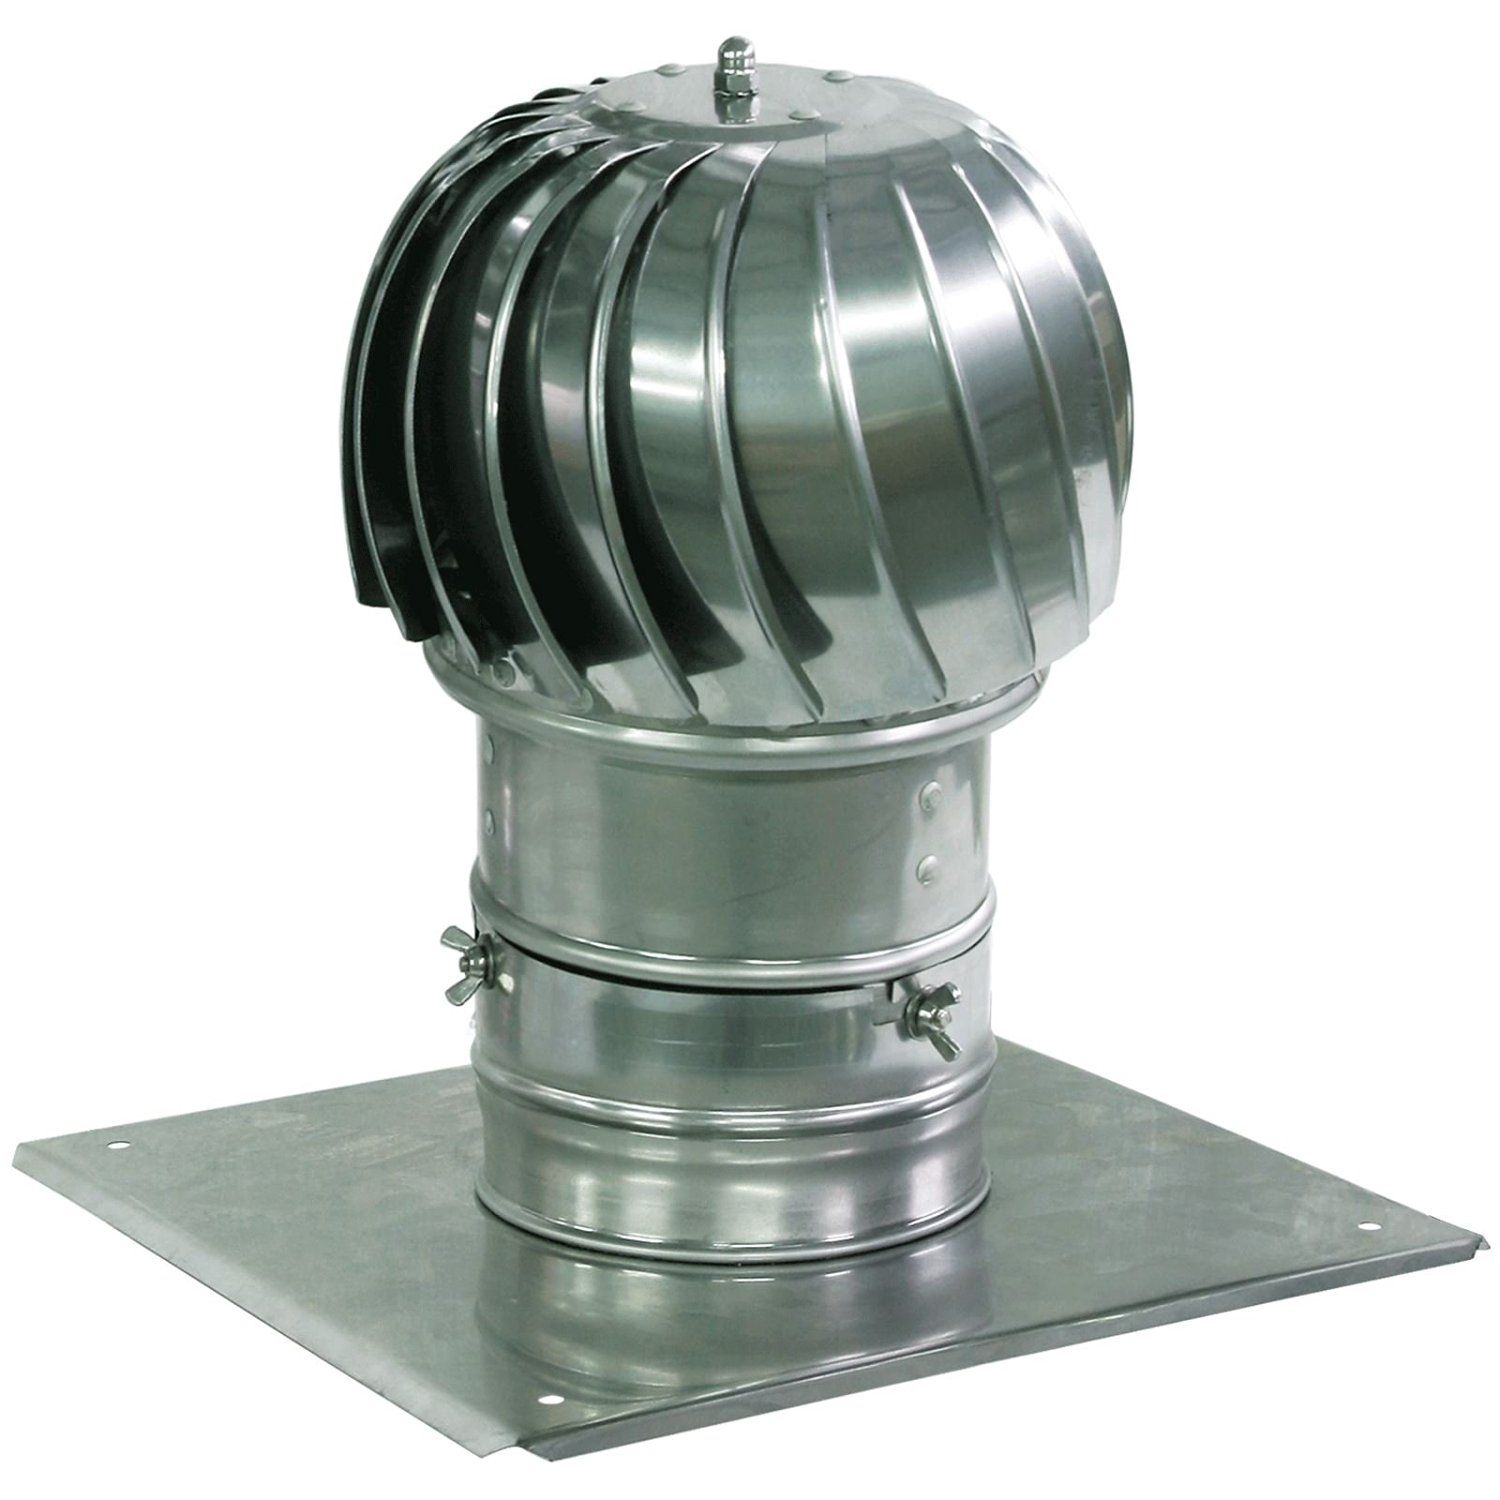 Spinning Chimney Cowl Aluminum Flue Ventilation With Extra Roof Plate 130mm Chimney Cowls Roof Cap Roof